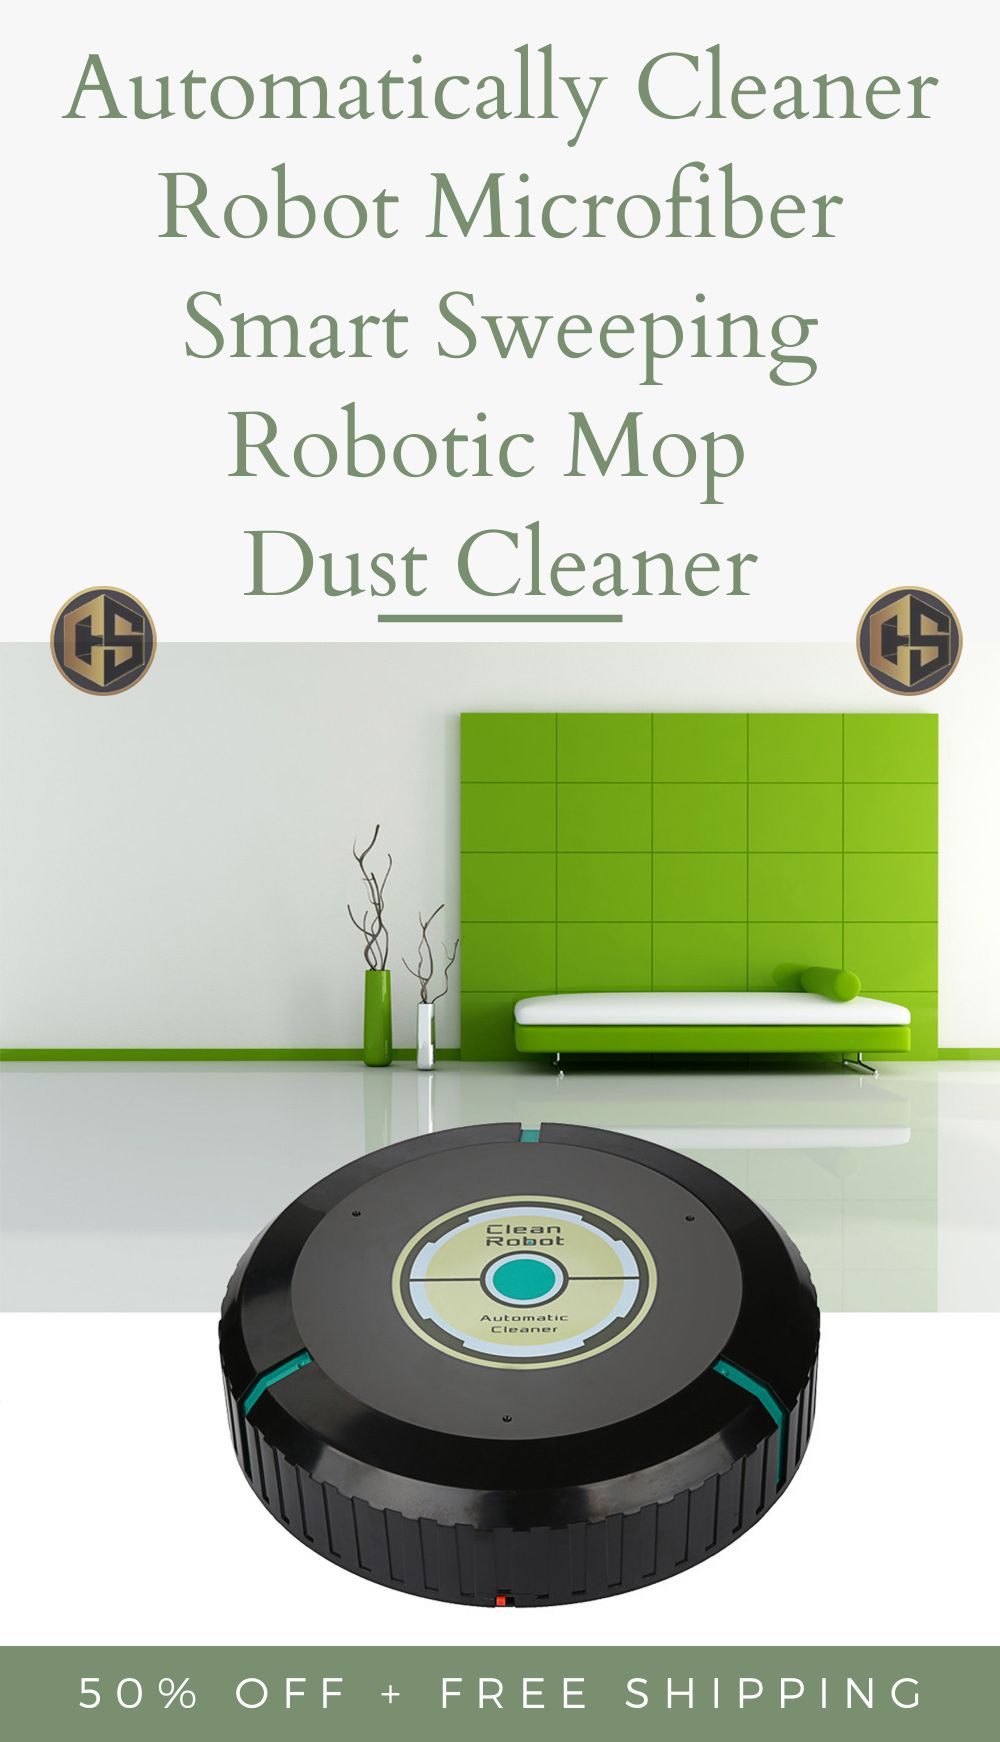 Automatically Cleaner Robot Microfiber Smart Sweeping